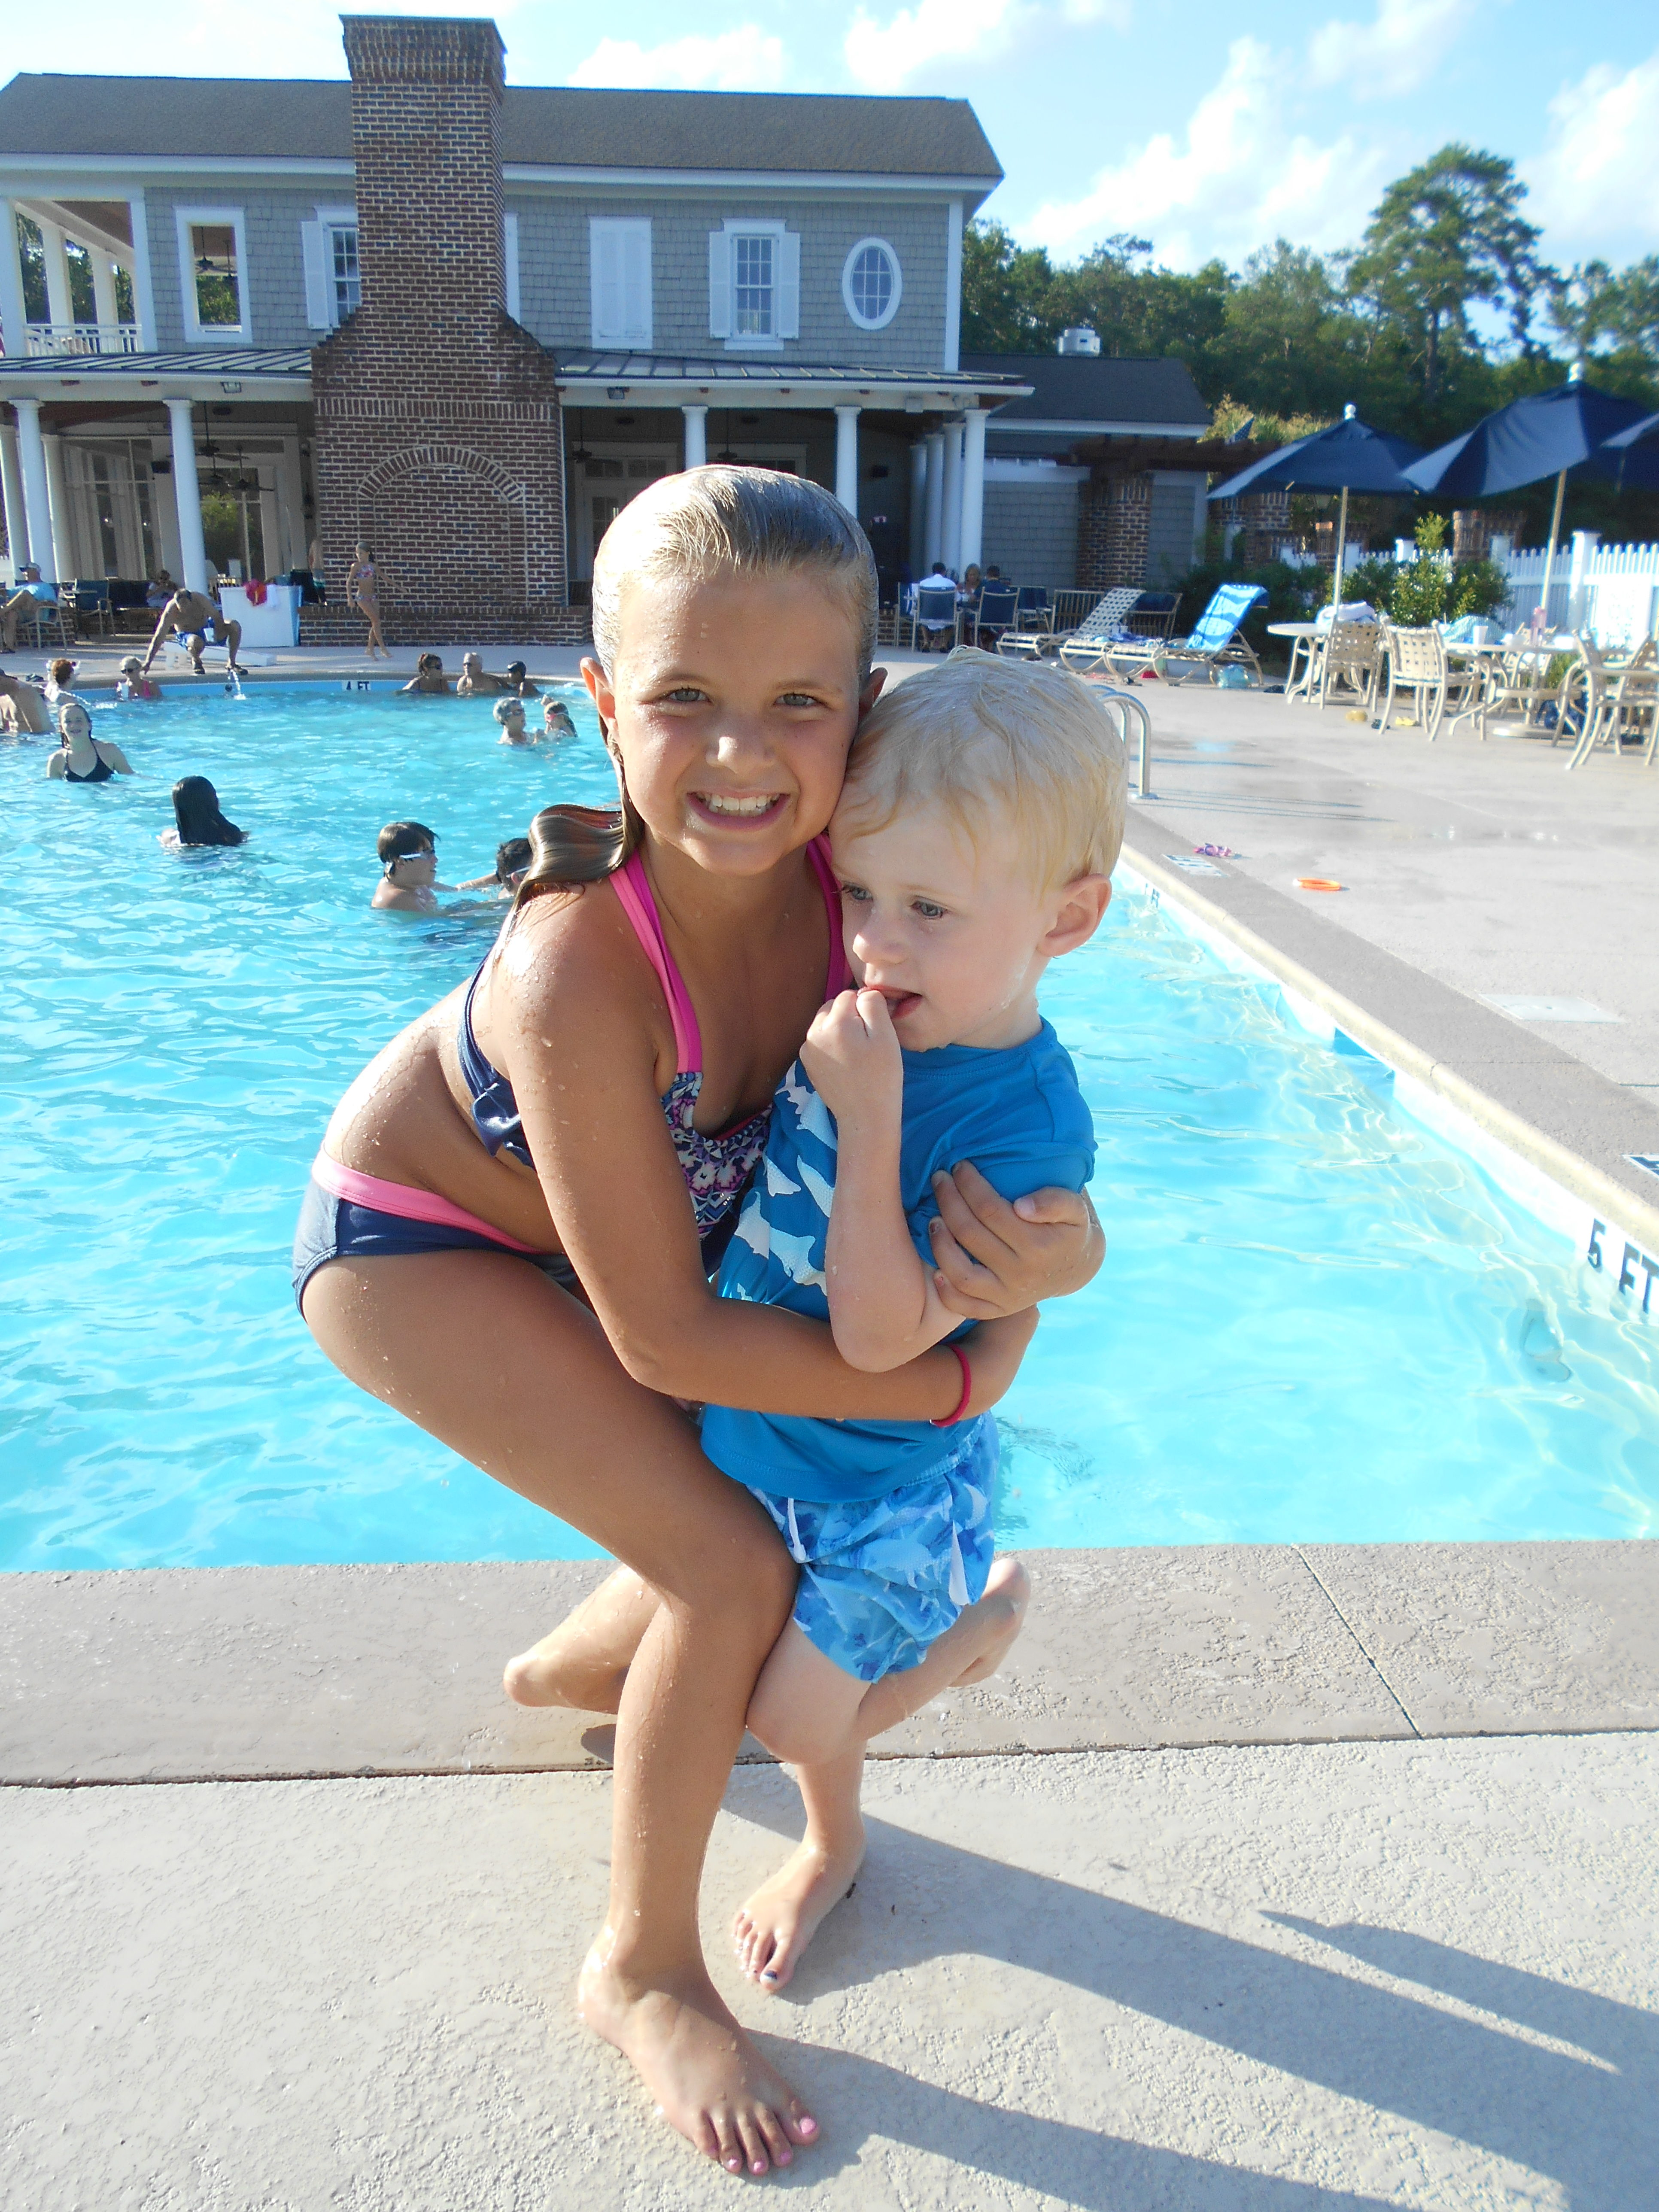 Kids by the pool at Reserve Harbor Yacht Club